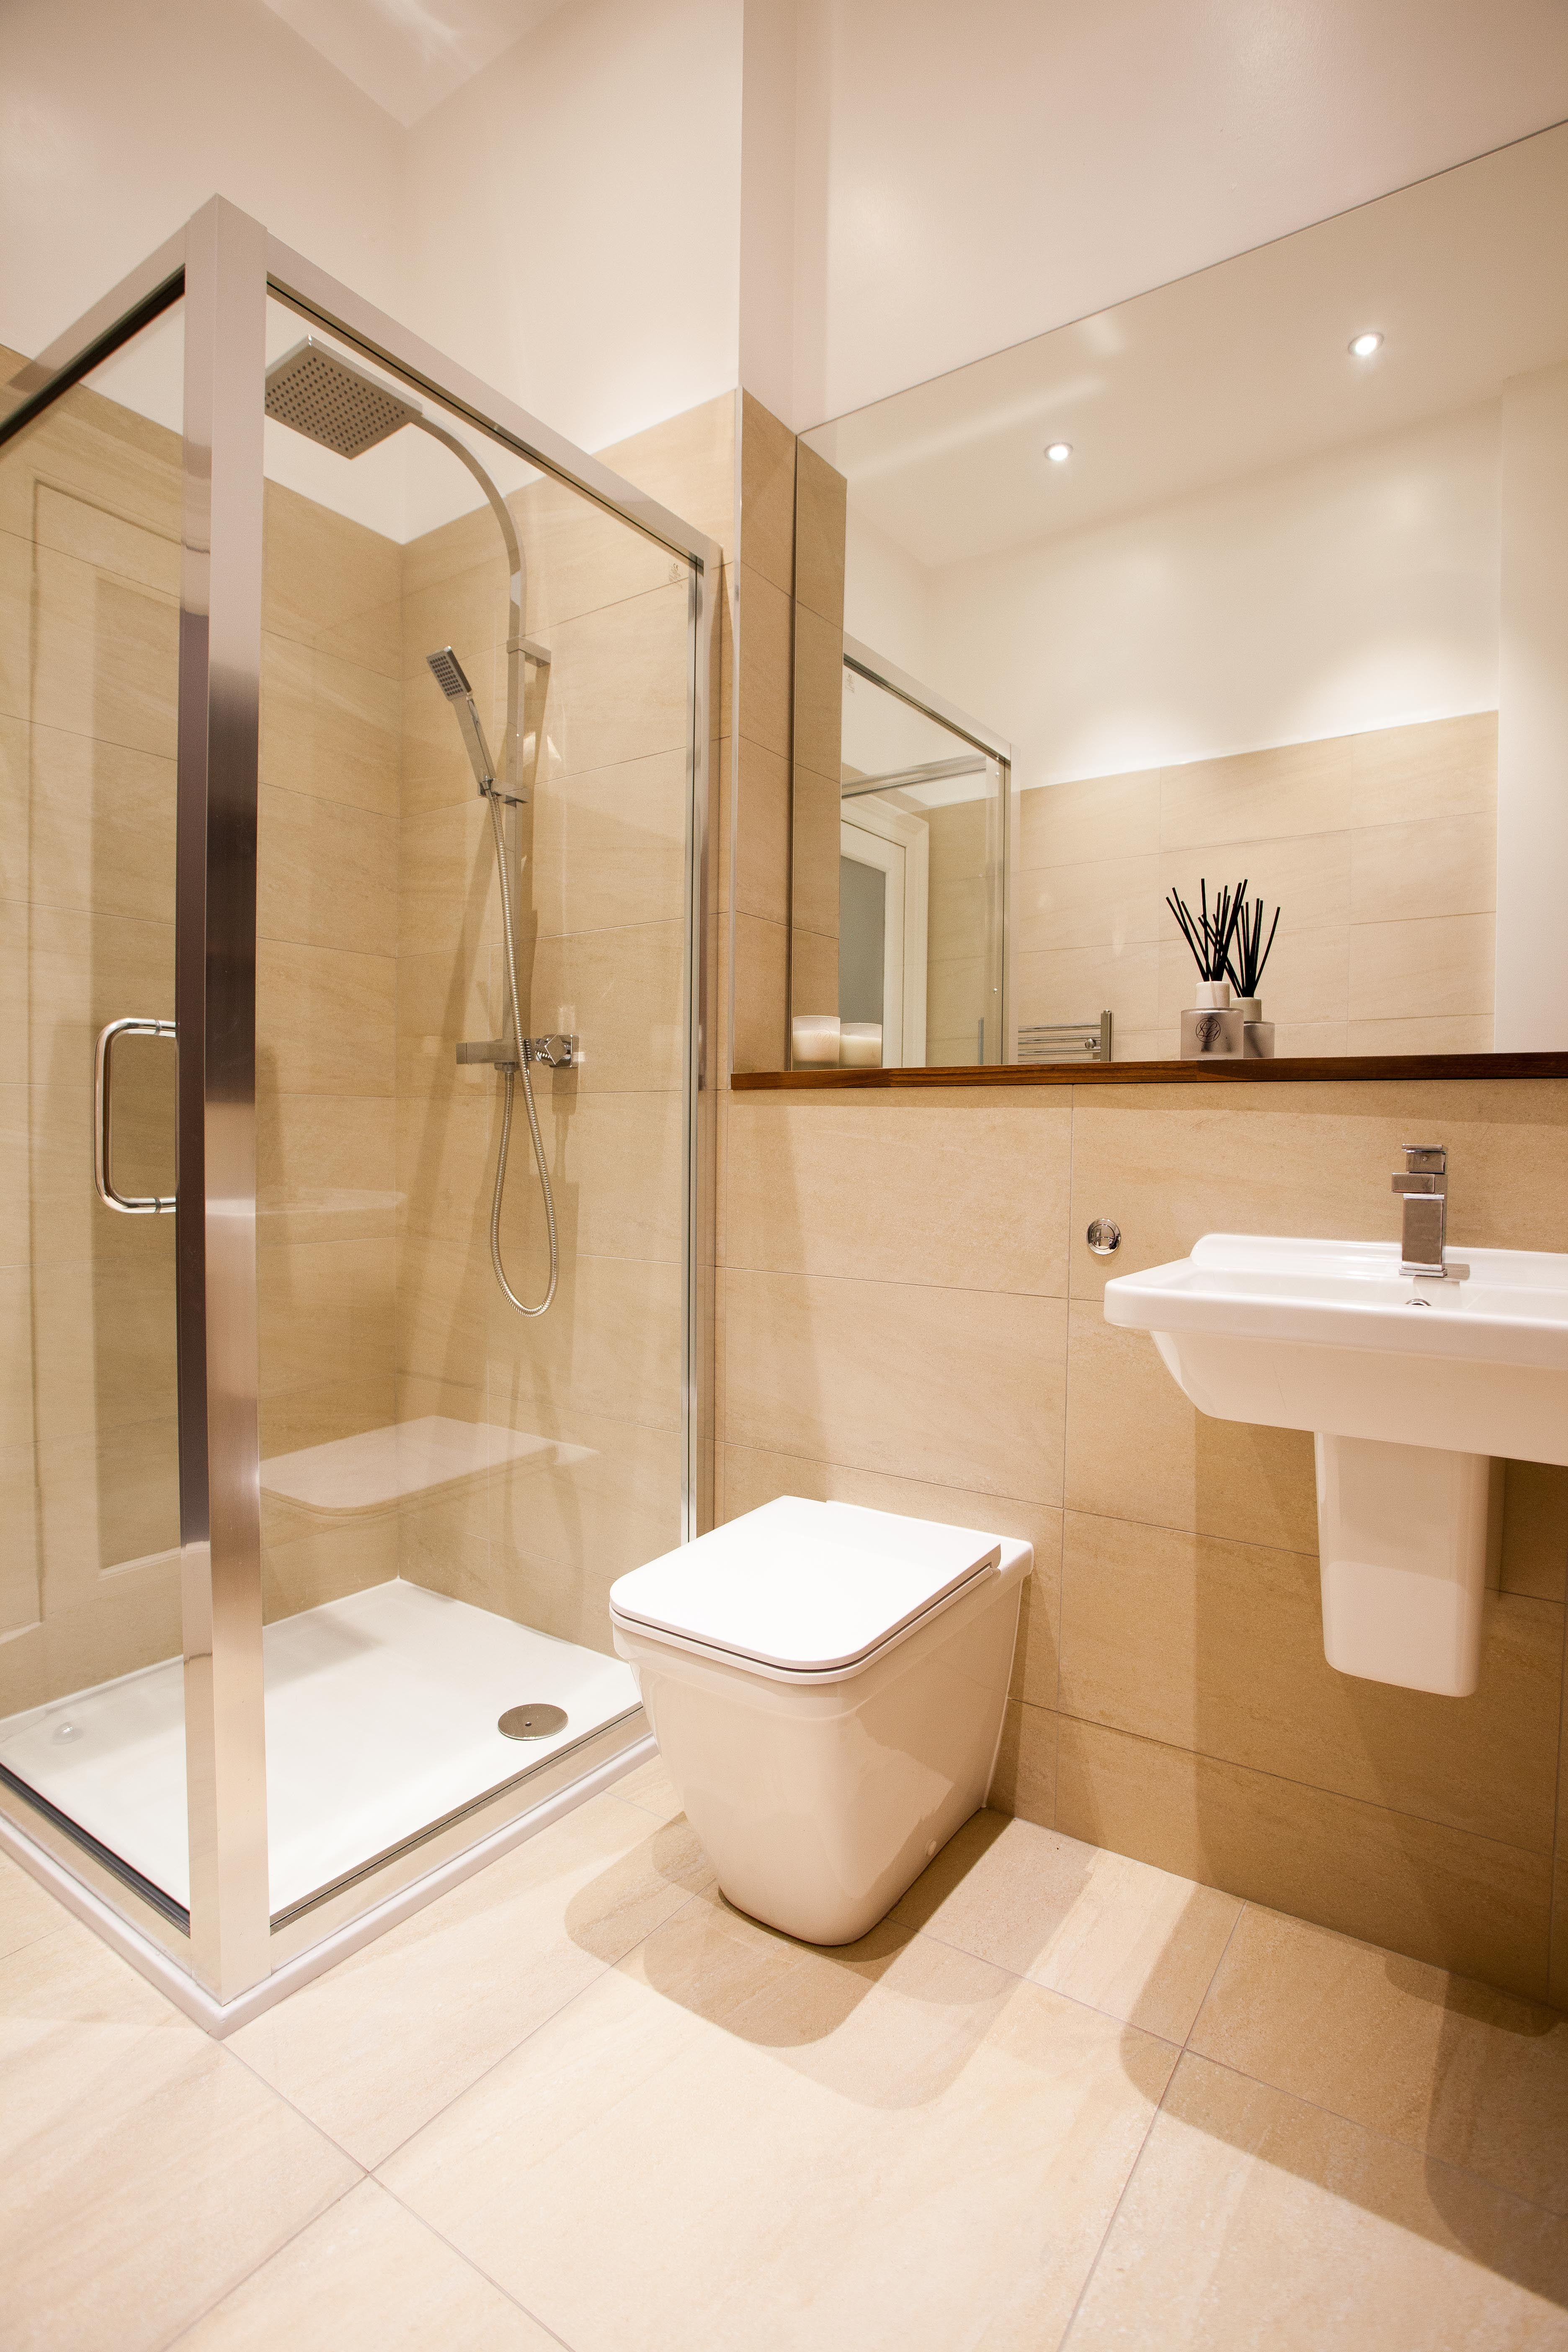 Large shower with low level shower tray, back to wall toilet and semi ped basin.